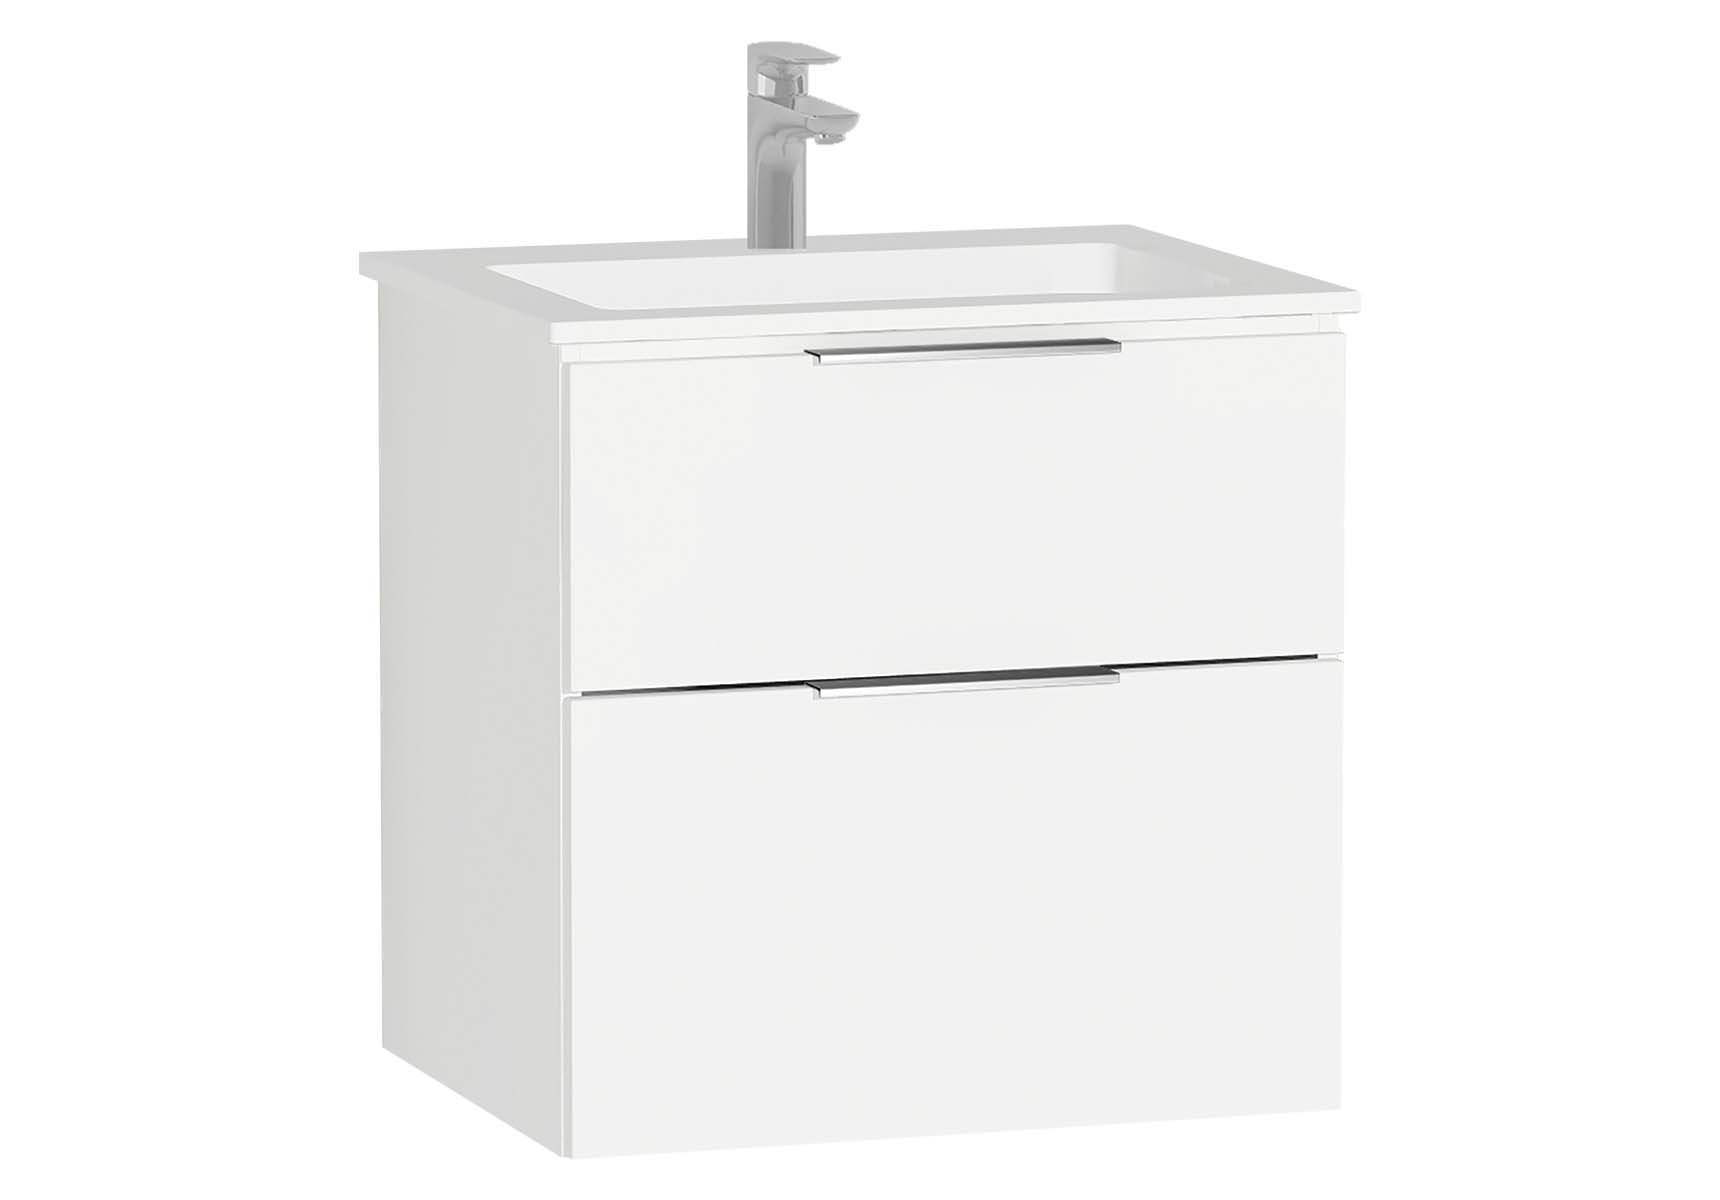 Central Washbasin Unit with 2 drawers, 60 cm, White High Gloss, Infinit Washbasin